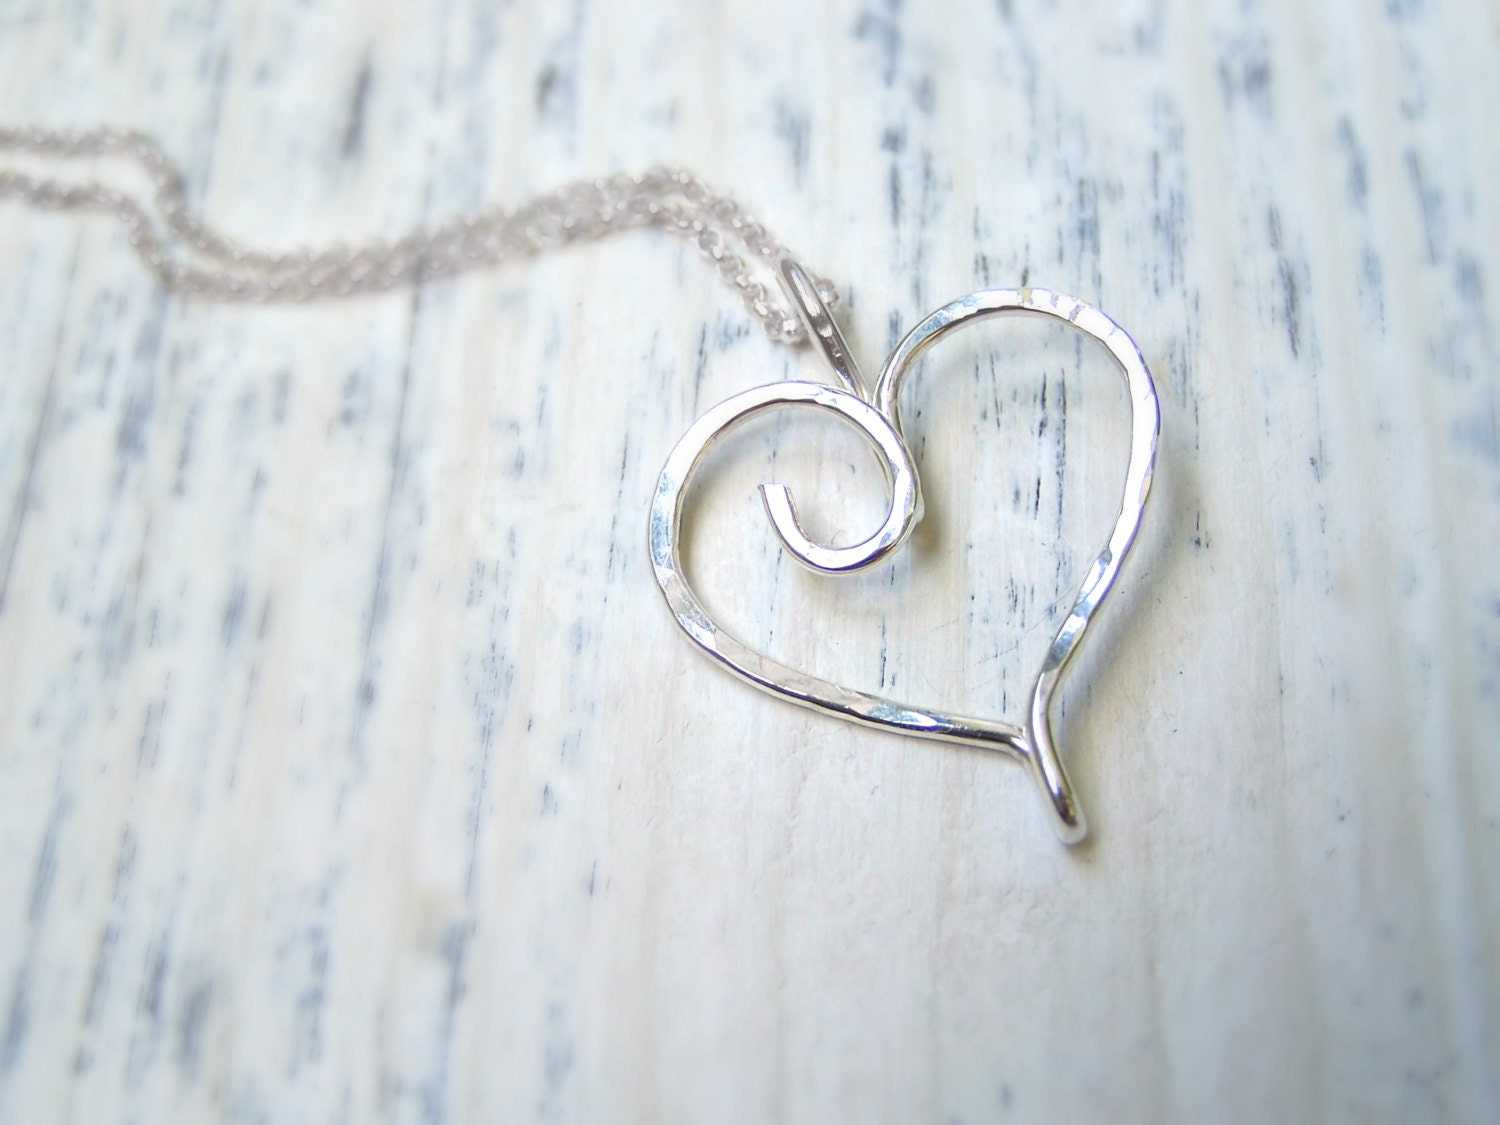 Ring Holder Necklace Hammered Ring Necklace Holder Wedding: Hammered Sterling Silver Heart Charm Ring Holder Pendant